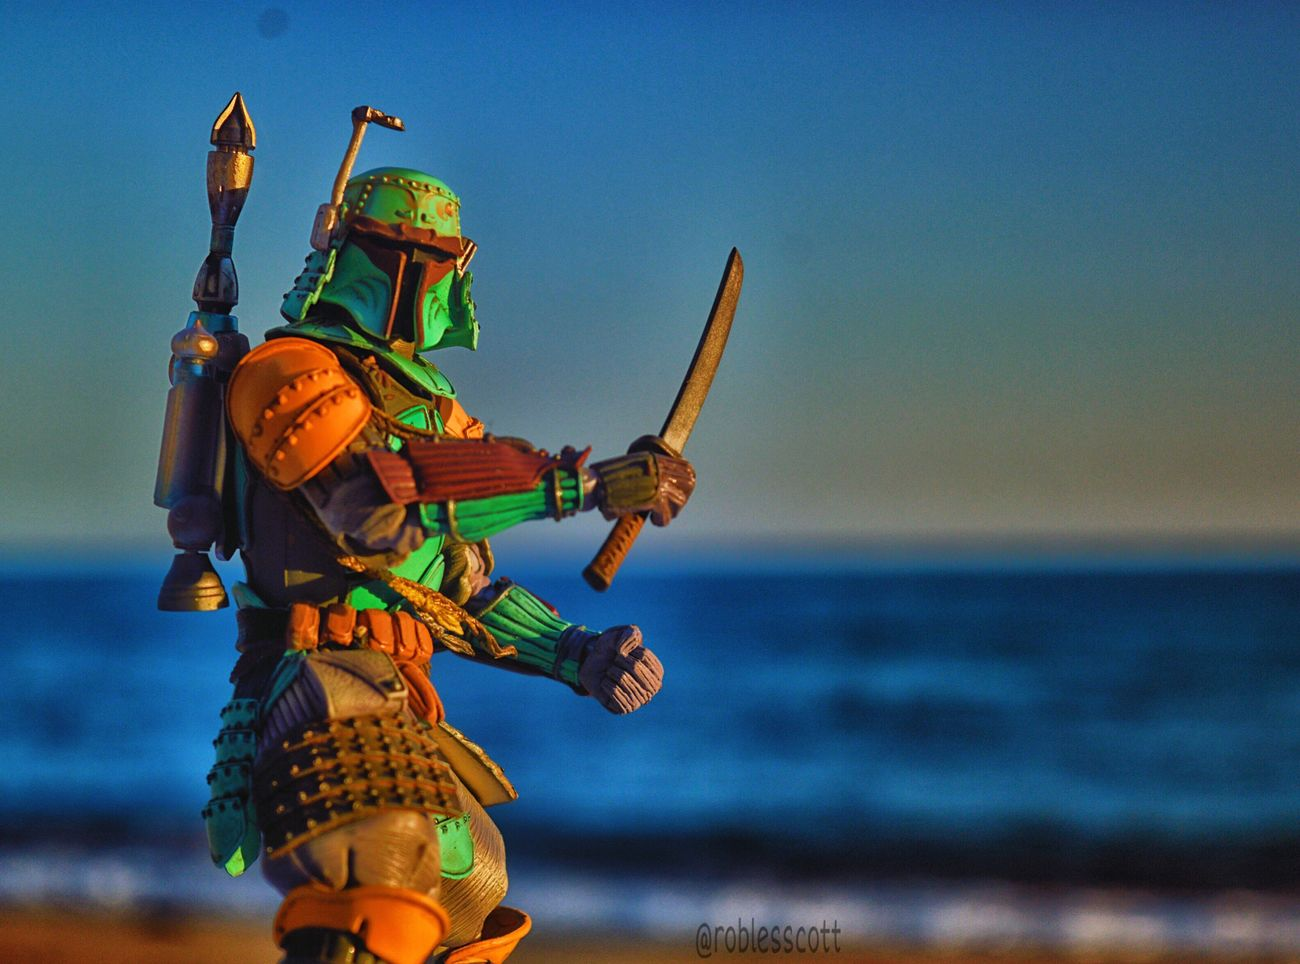 The Force is atronó in bounty hunters Starwars MayTheFourthBeWithYou Toycrewbuddies Actionfigures Justanothertoygroup Toygroup_alliance Epictoyart Toyphotographers Ata_dreadnoughts Actionfigurephotography Photography Portrait Toysaremydrug Bobafett